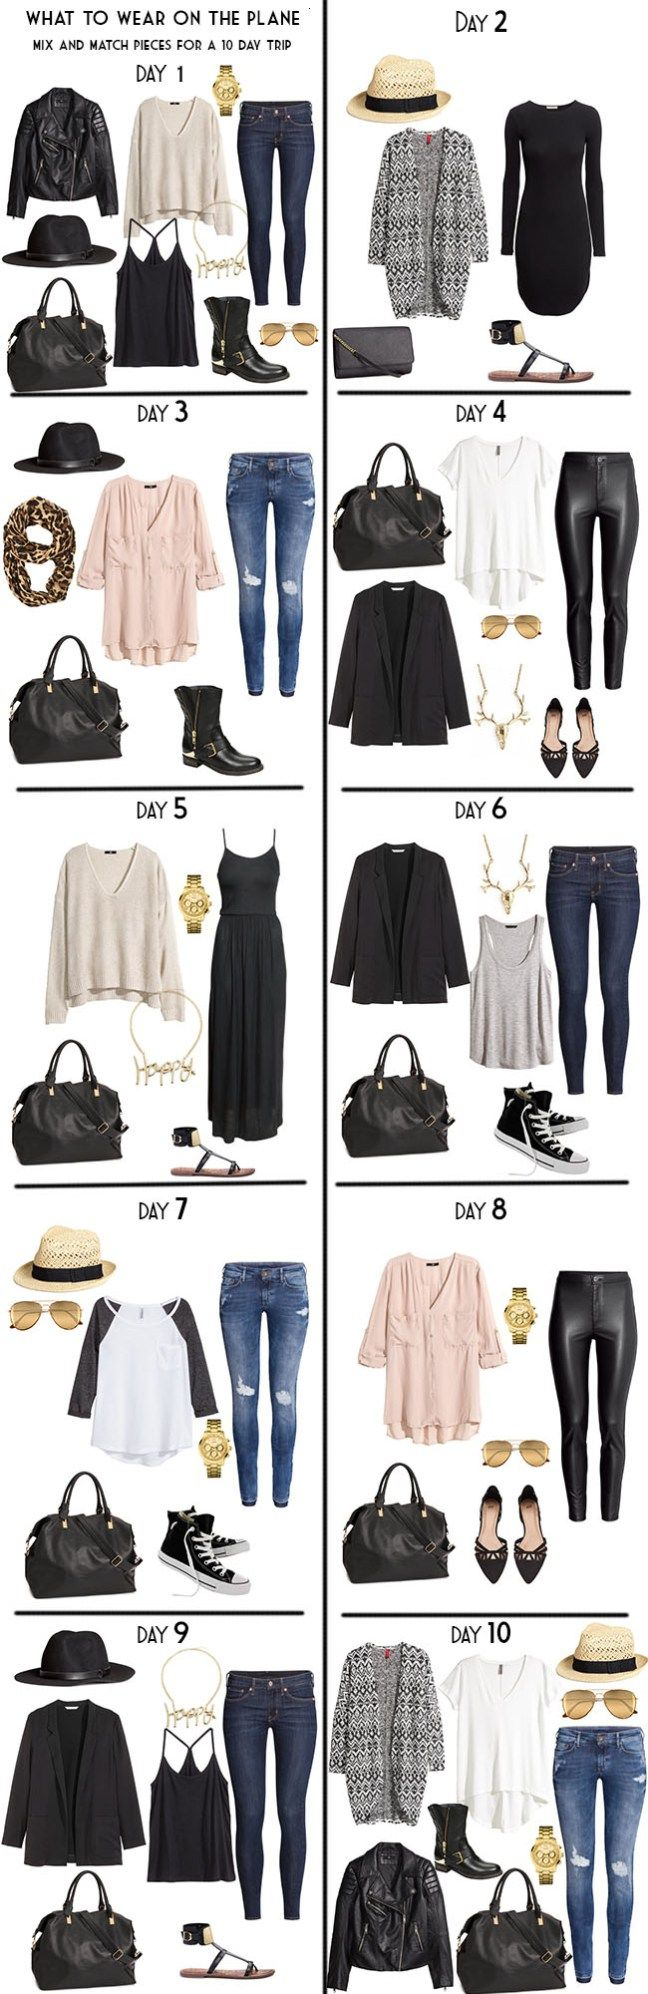 Packing List Day Outfits                                                       …